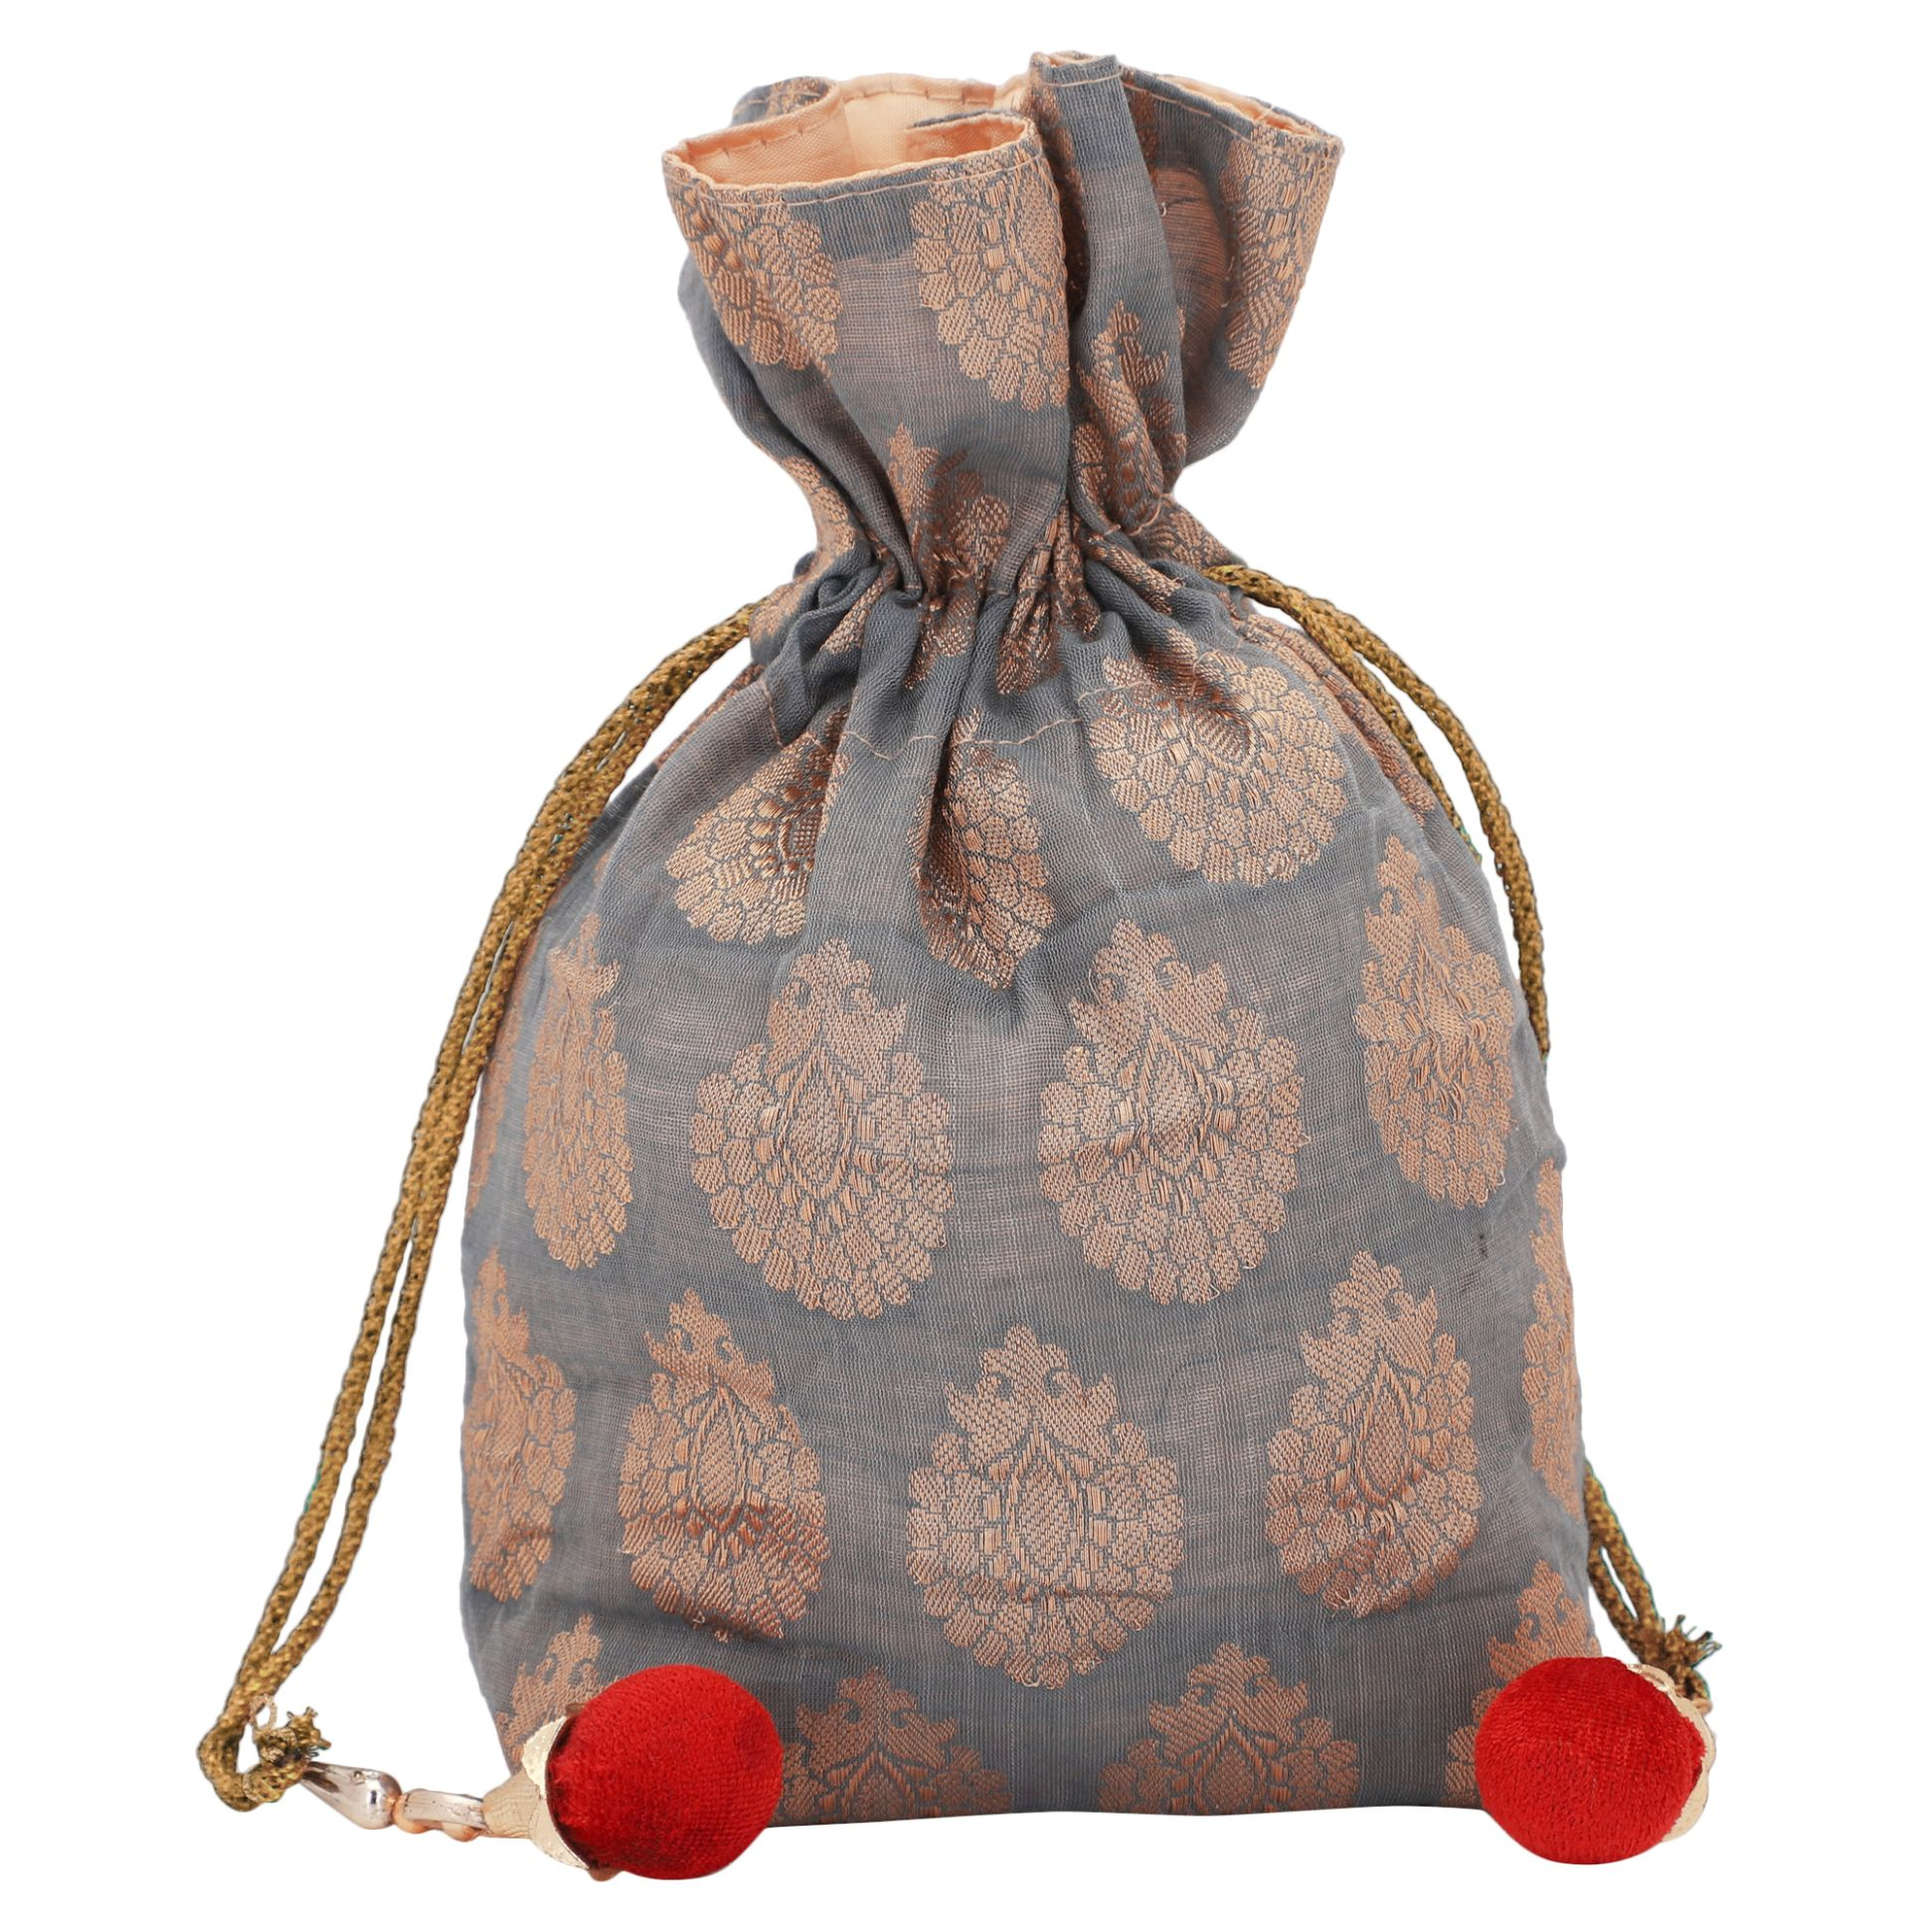 Banarasi Chanderi Jacquard Potli Bag in Grey 2